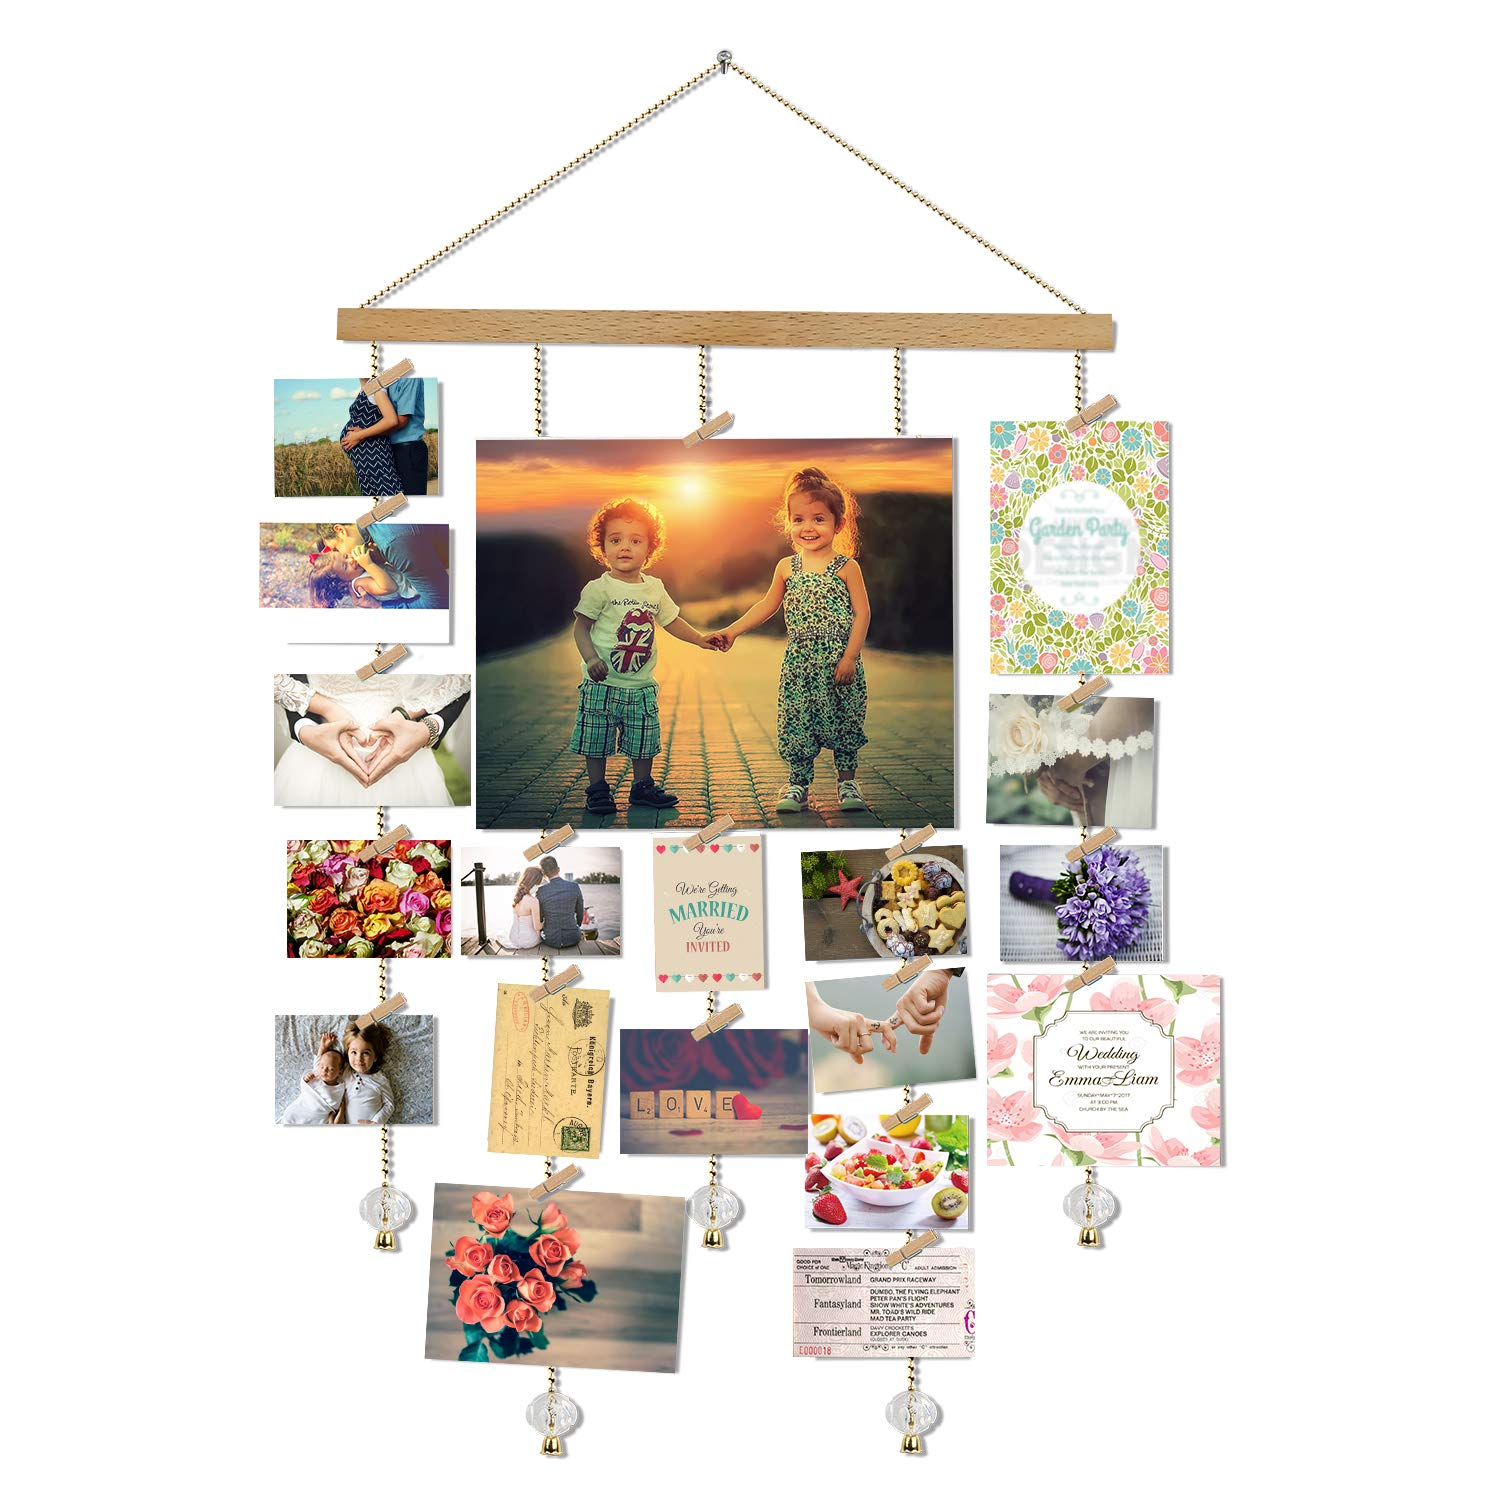 O-KIS Photo Display, Picture Frame Collage by Multi Photo Display with 20 Clips, Aged Walnut Wood, Golden Chain with Crystal Pendant,16×29 inch 16×29 inch